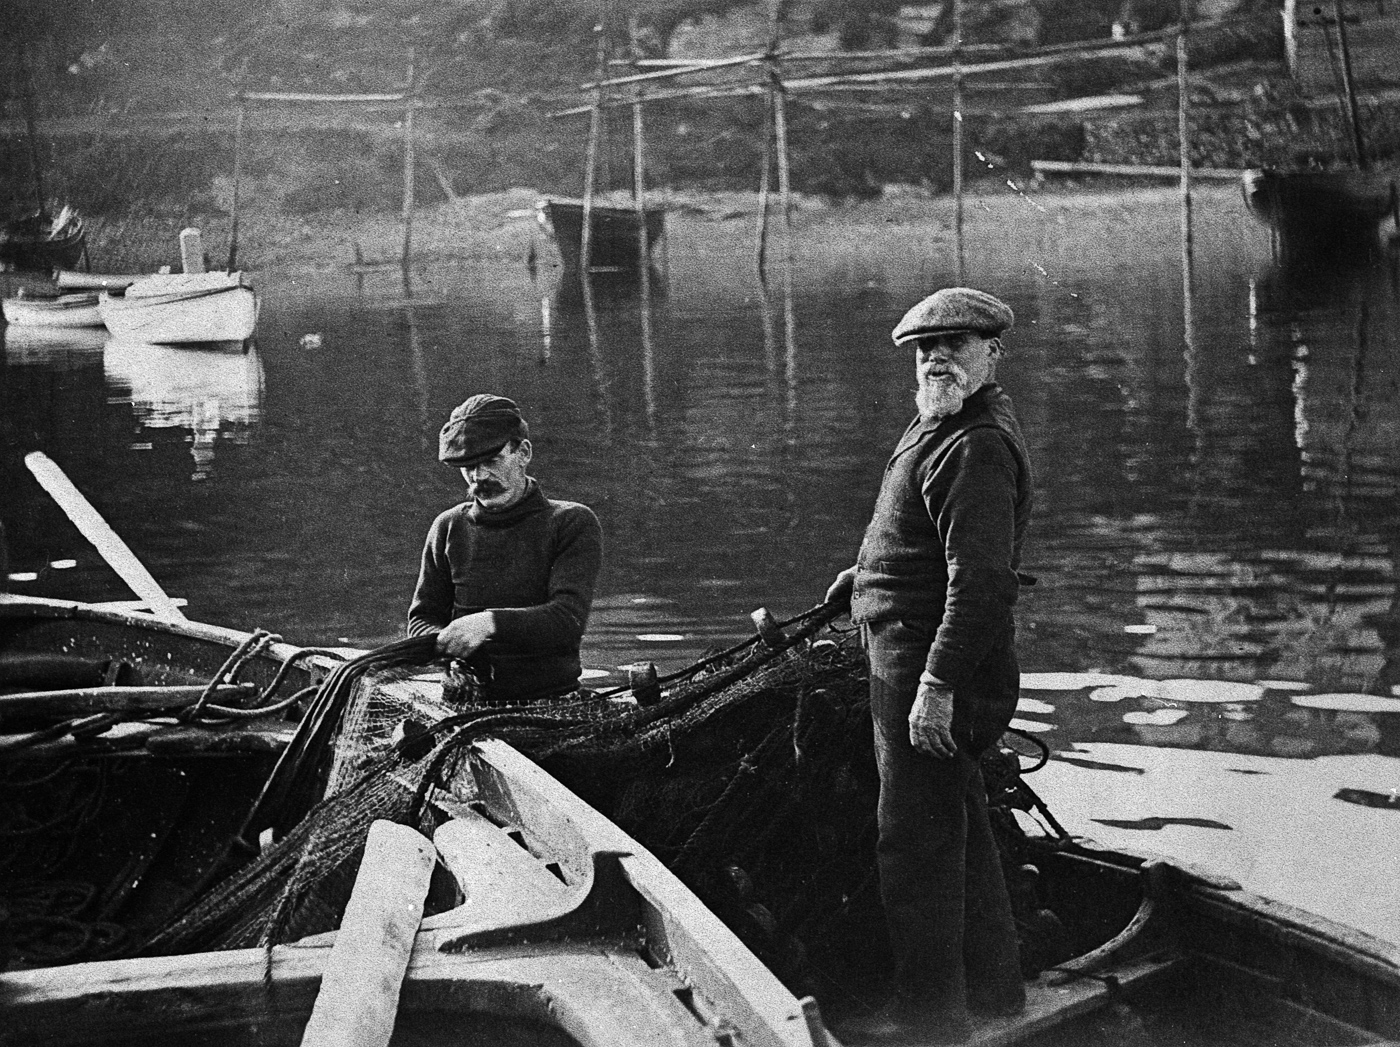 Two men transferring a ringnet into a small boat, Tarbert, 1912.